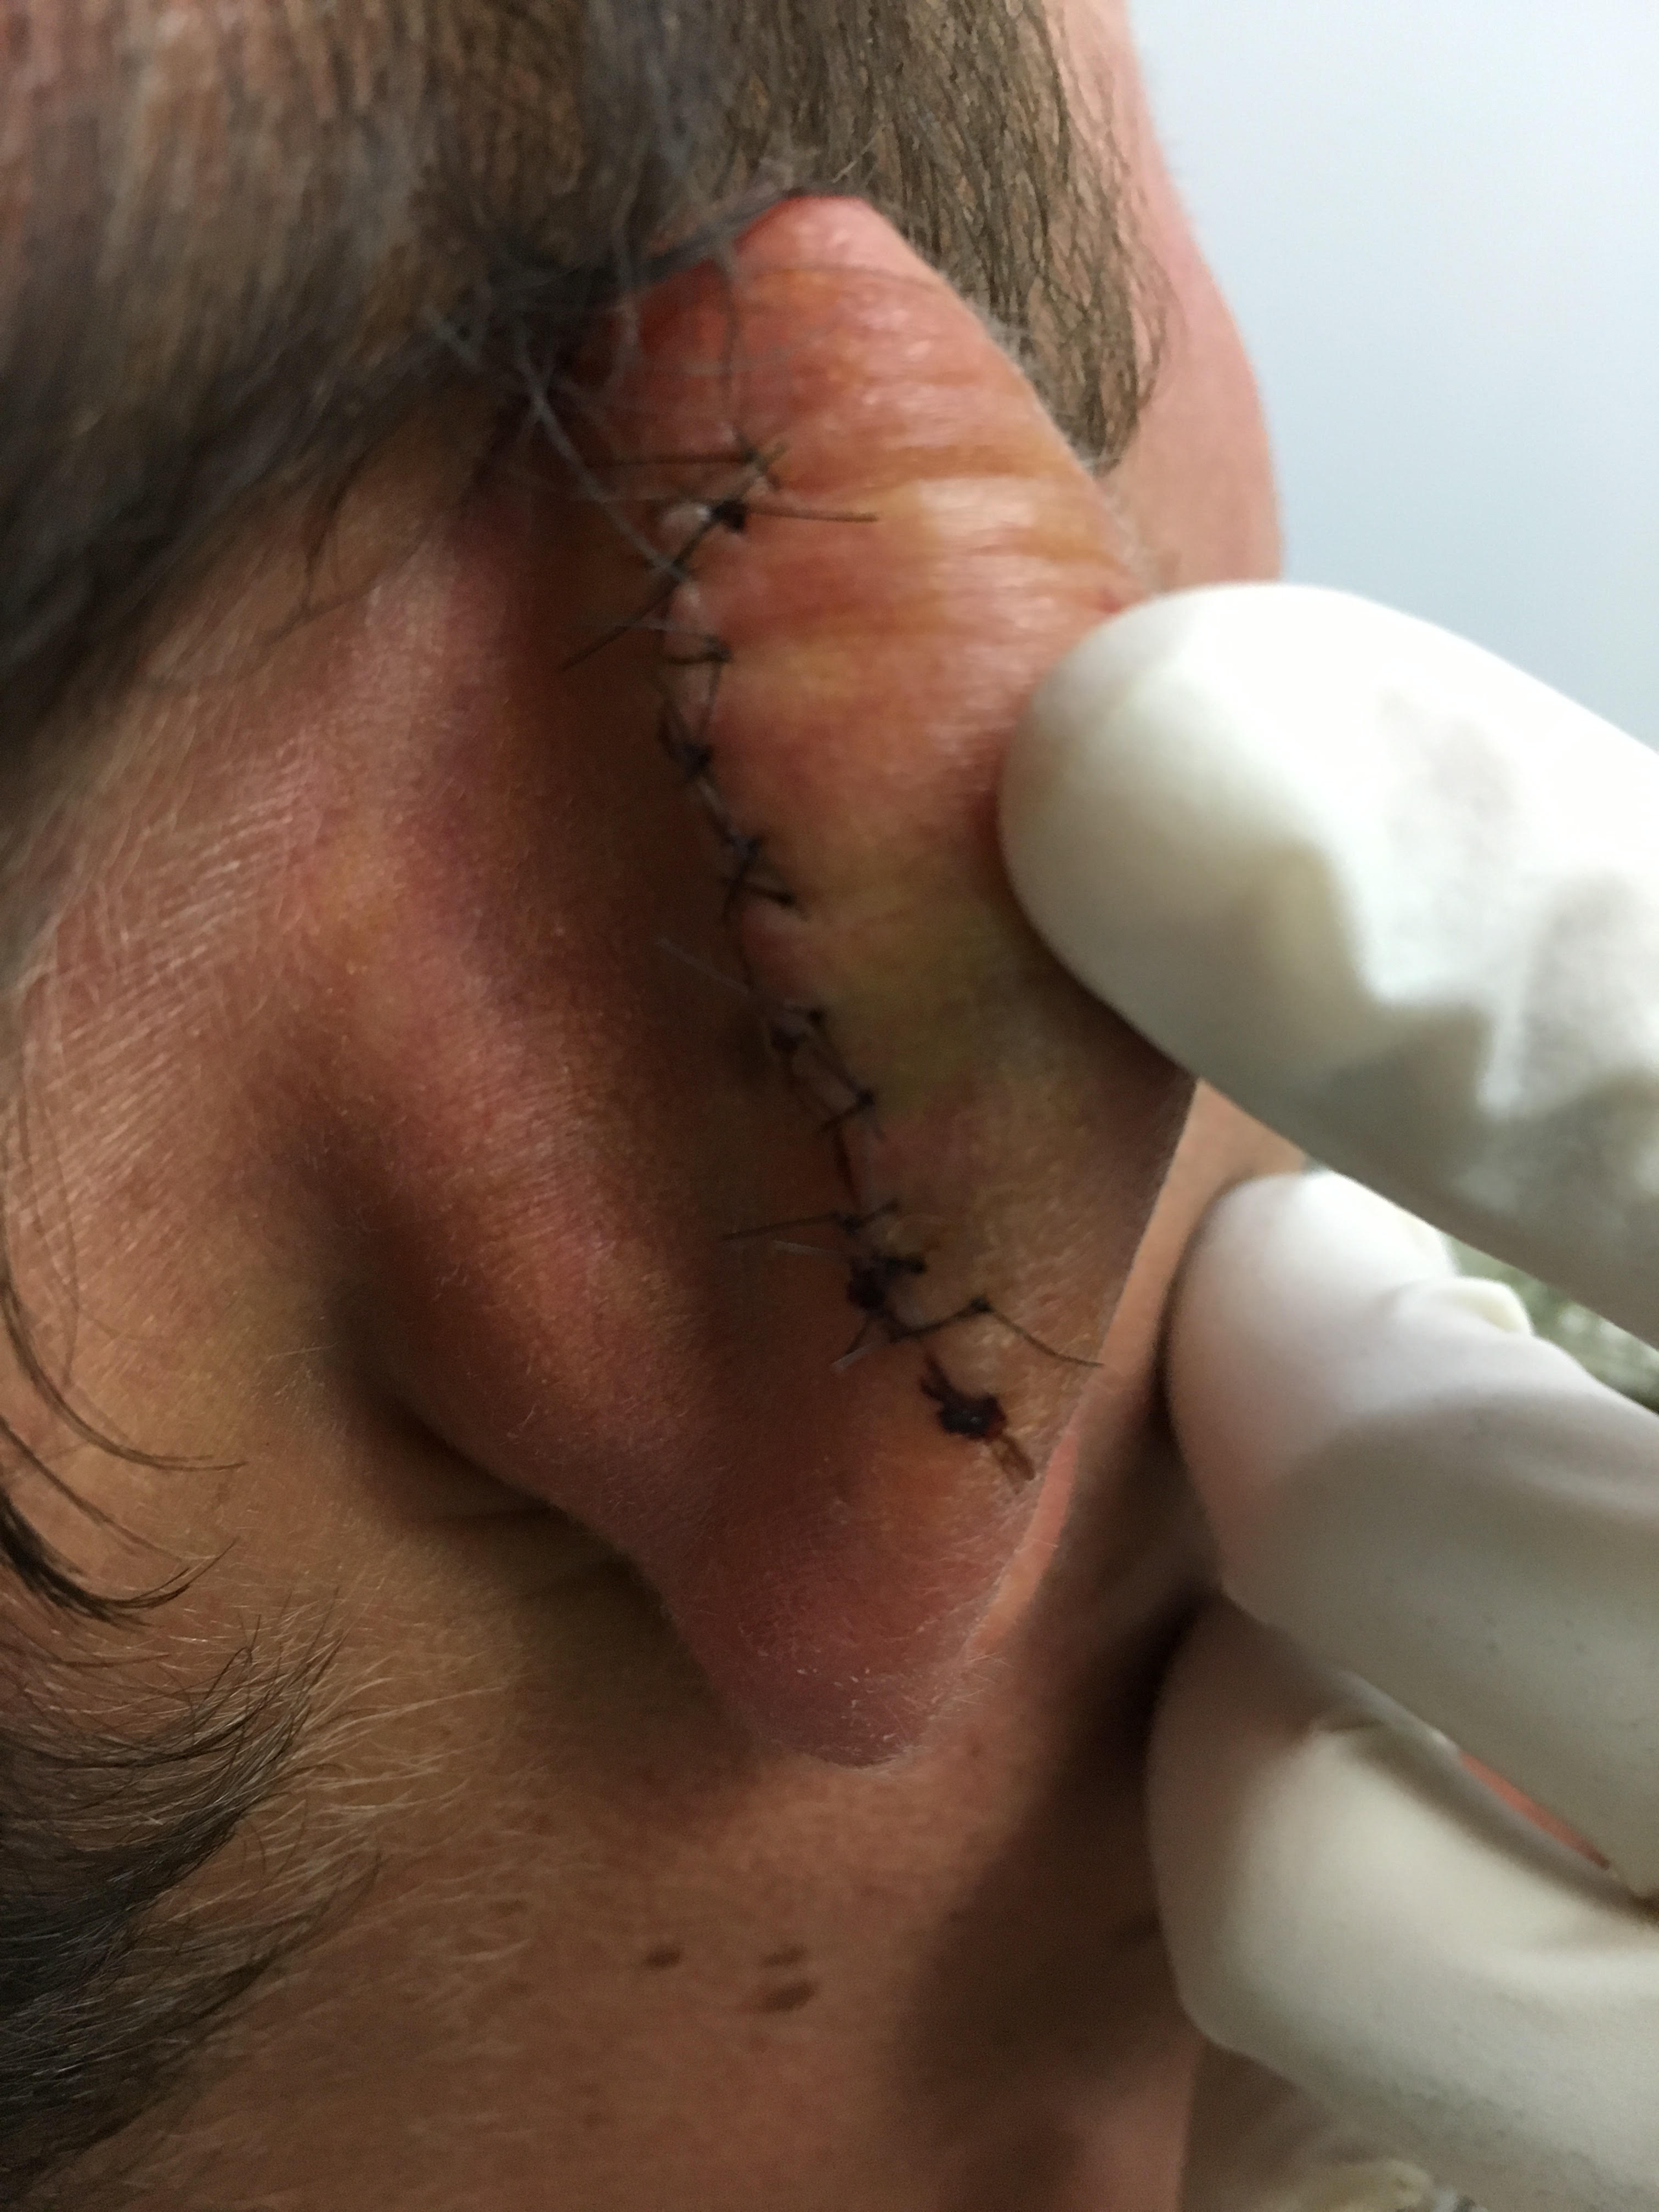 Stitches to Timothy's ear